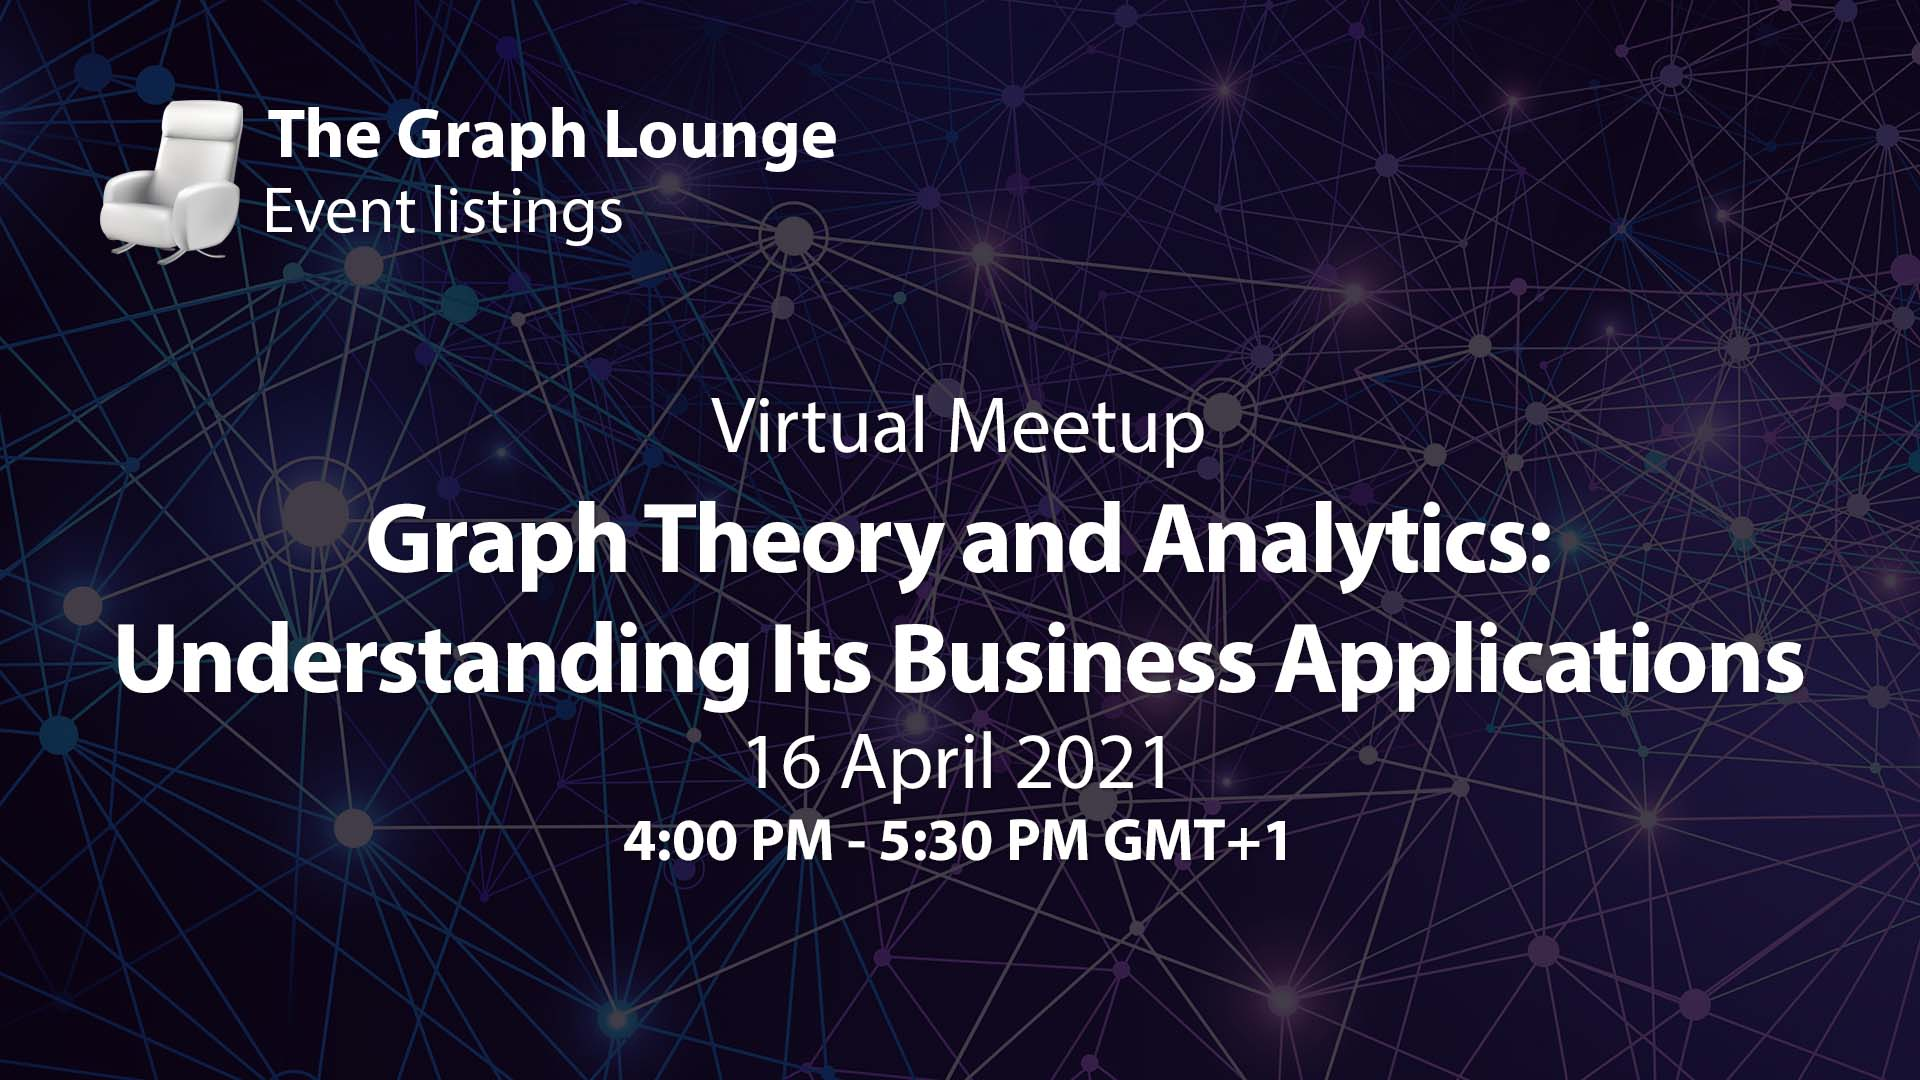 Graph Theory and Analytics: Understanding Its Business Applications